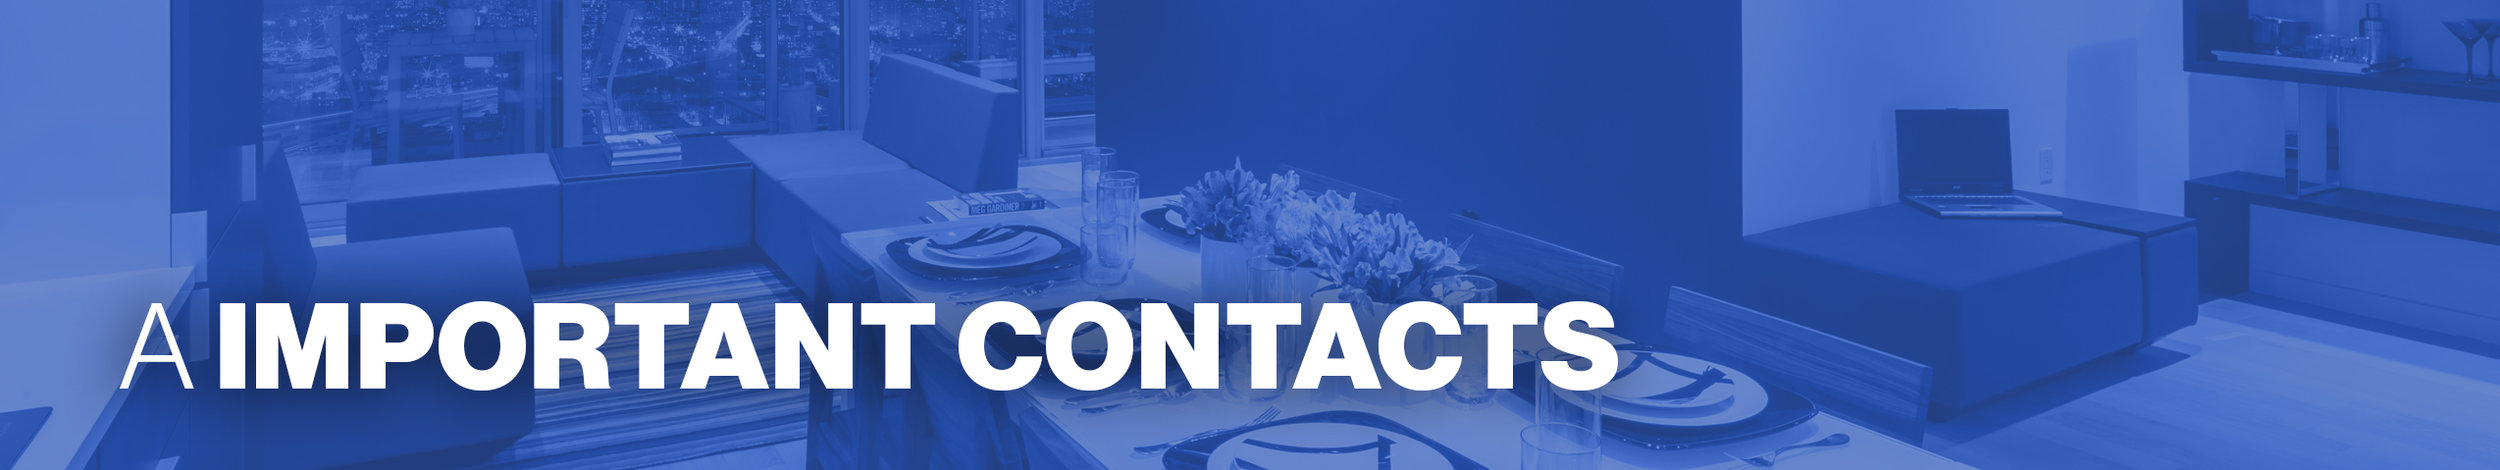 RC3-A-ImportantContacts.jpg